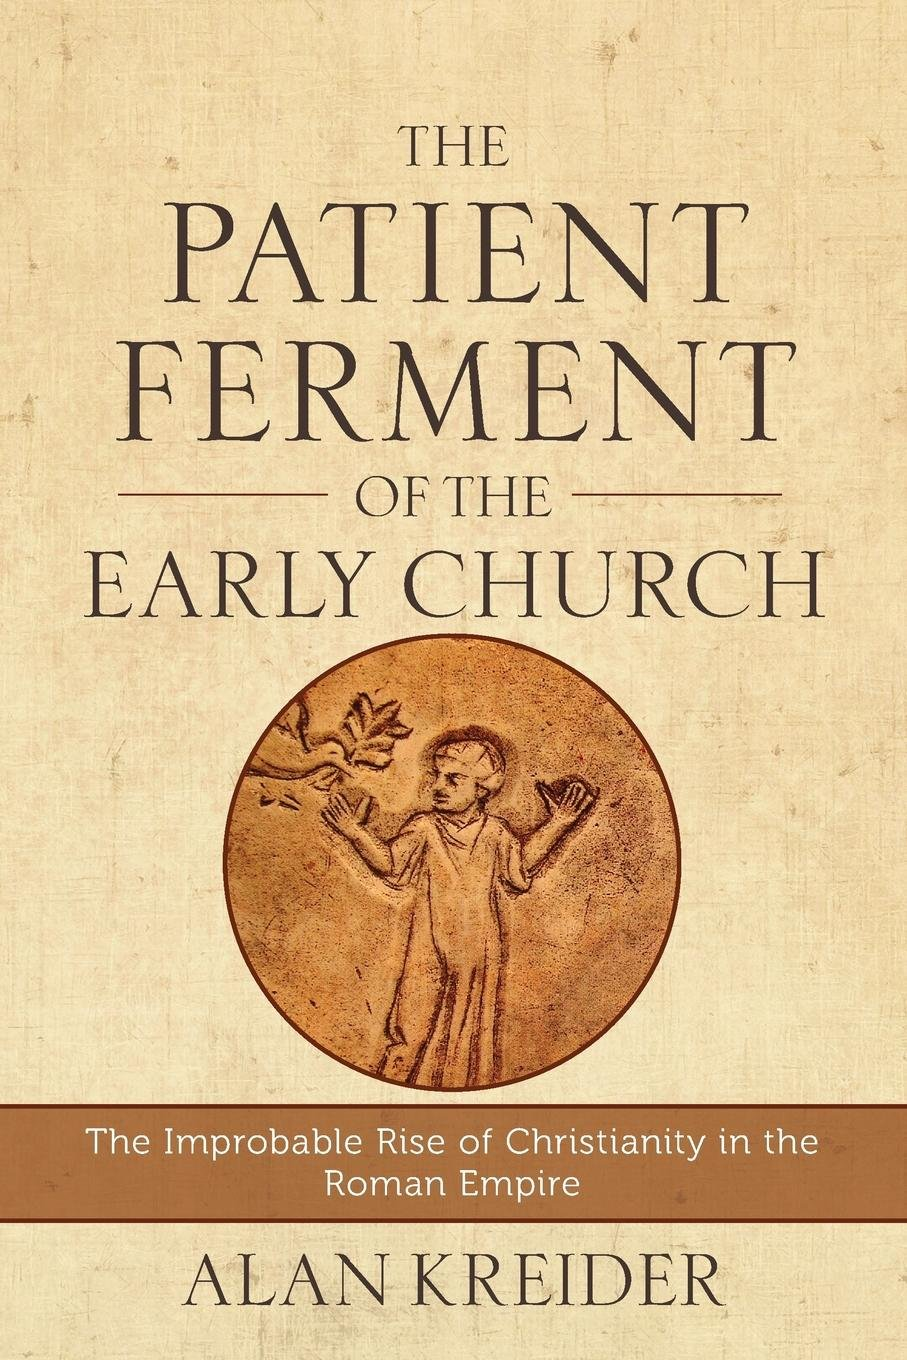 The Patient Ferment of the Early Church: The Improbable Rise of  Christianity in the Roman Empire: Alan Kreider: 9780801048494: Amazon.com:  Books